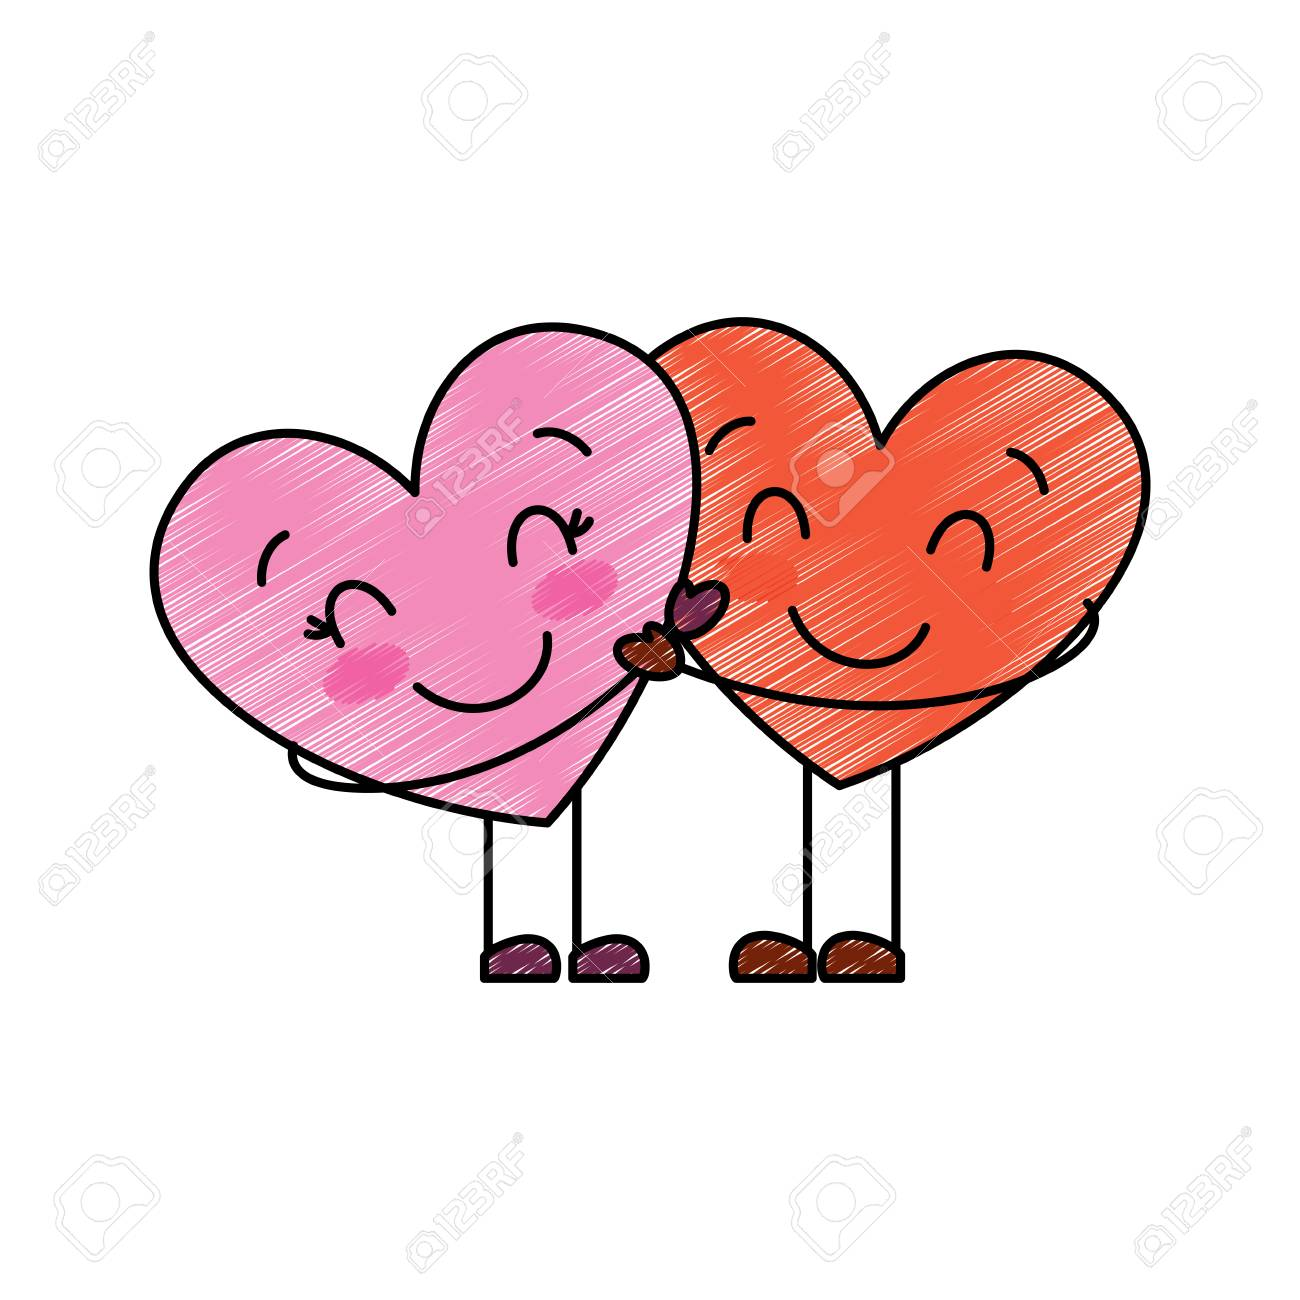 Couple In Love Two Cute Hearts Hugging Romance Vector Illustration Royalty Free Cliparts Vectors And Stock Illustration Image 95713530